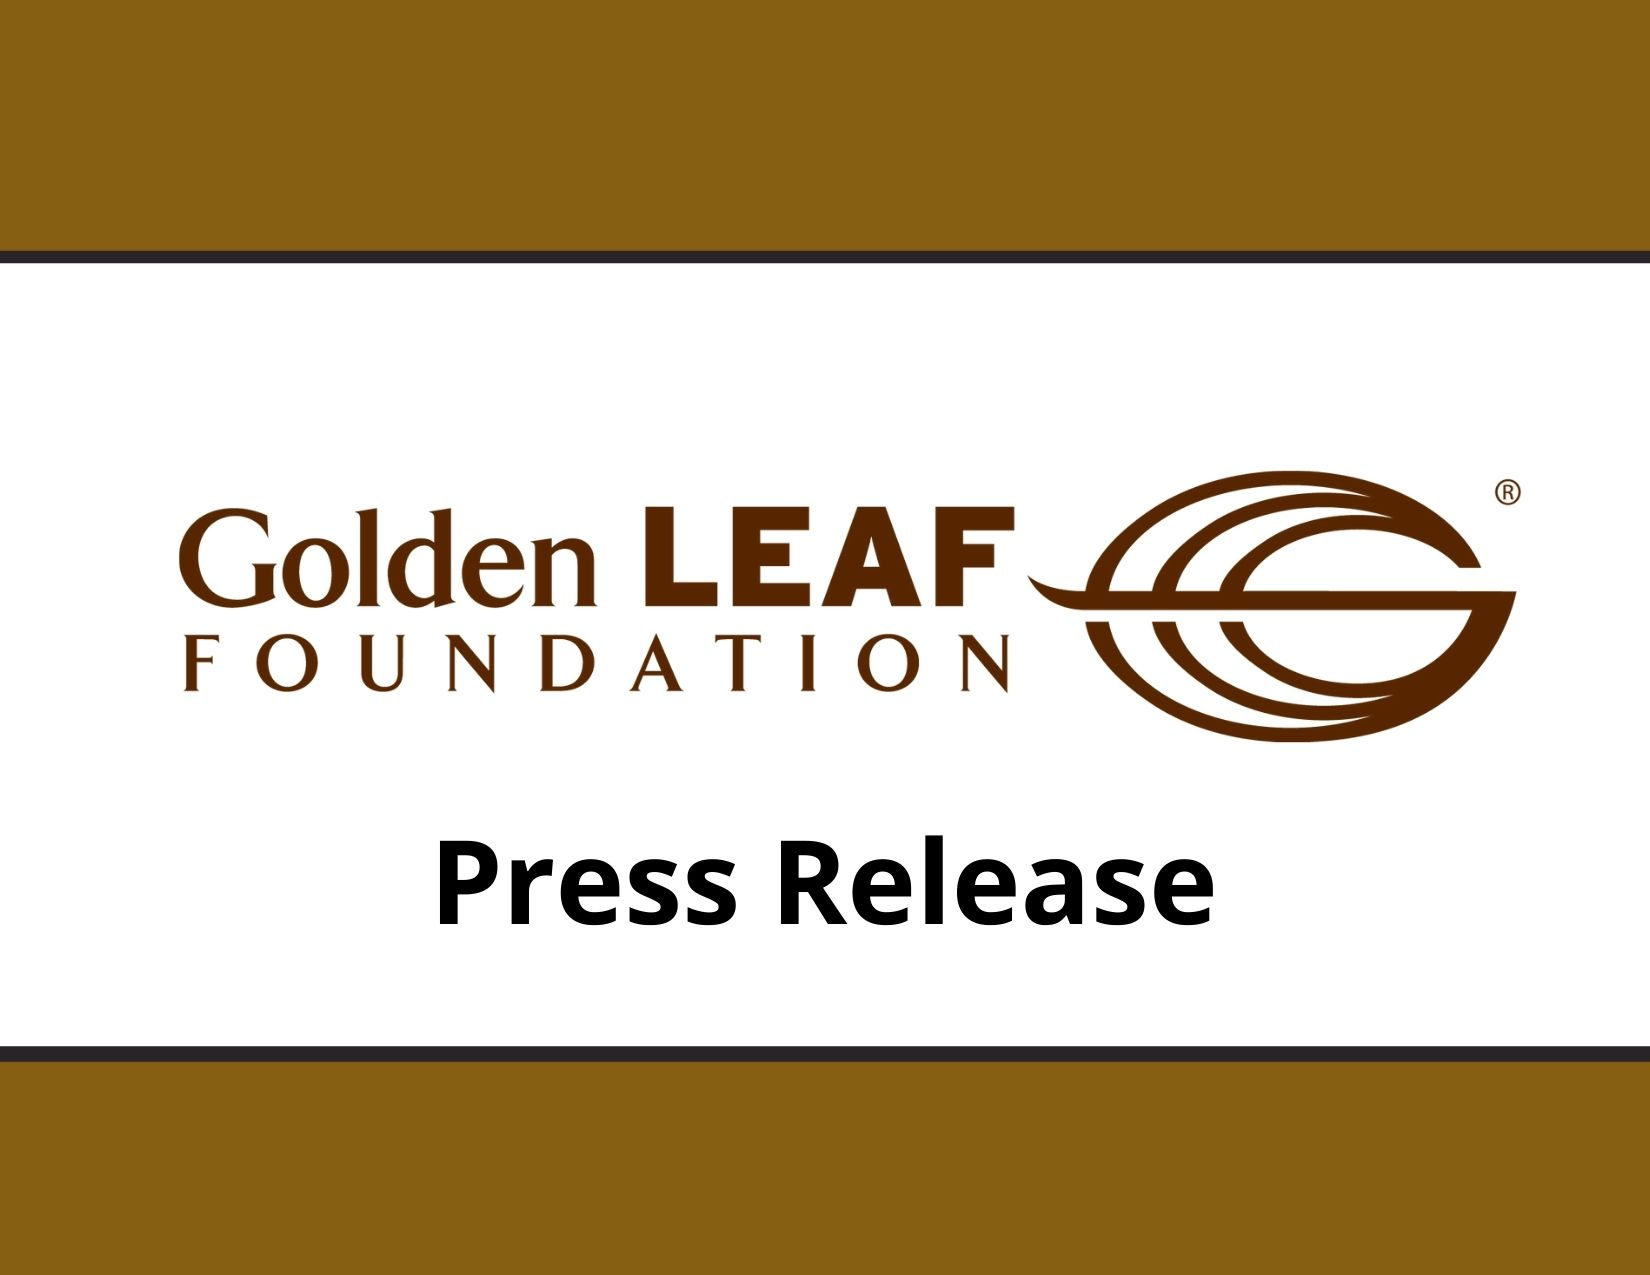 Golden LEAF Board announces 19 projects totaling more than $11M in funding, hears economic update from Tom Barkin, President of the Federal Reserve Bank of Richmond